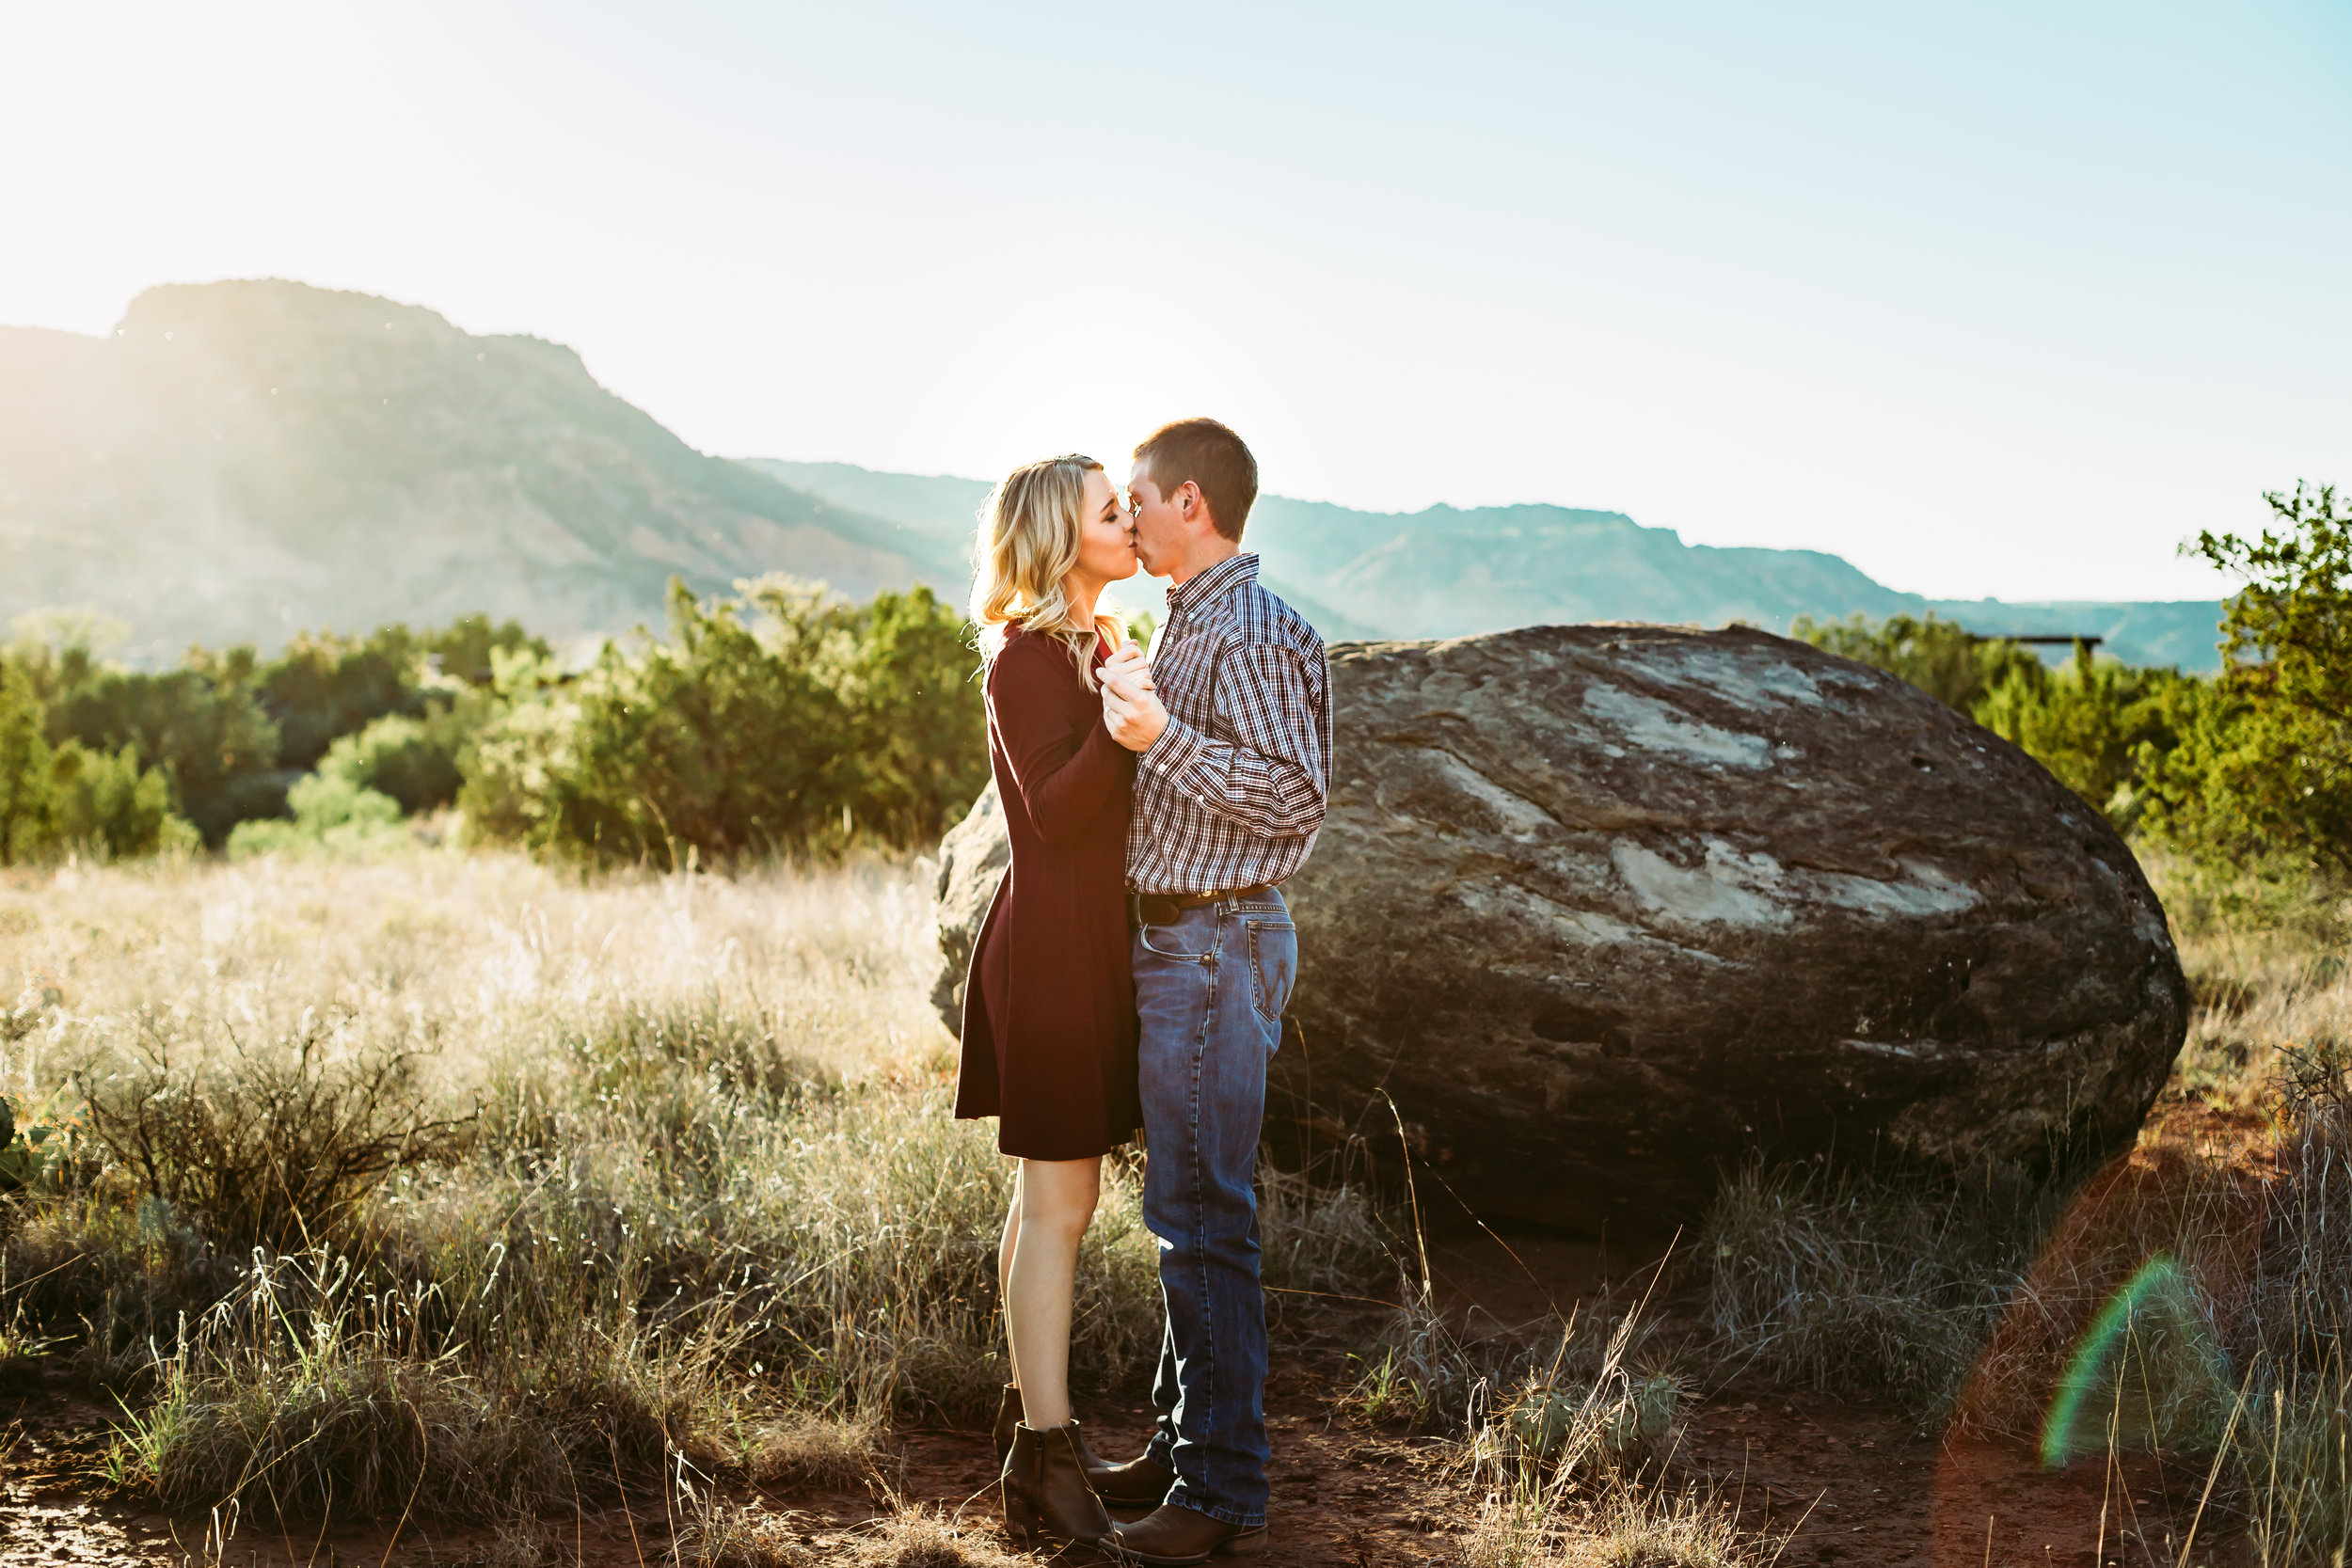 Mom and dad share a kiss at sunset in this family session #tealawardphotography #texasfamilyphotographer #amarillophotographer #amarillofamilyphotographer #lifestylephotography #emotionalphotography #familyphotosoot #family #lovingsiblings #purejoy #familyphotos #familyphotographer #greatoutdoors